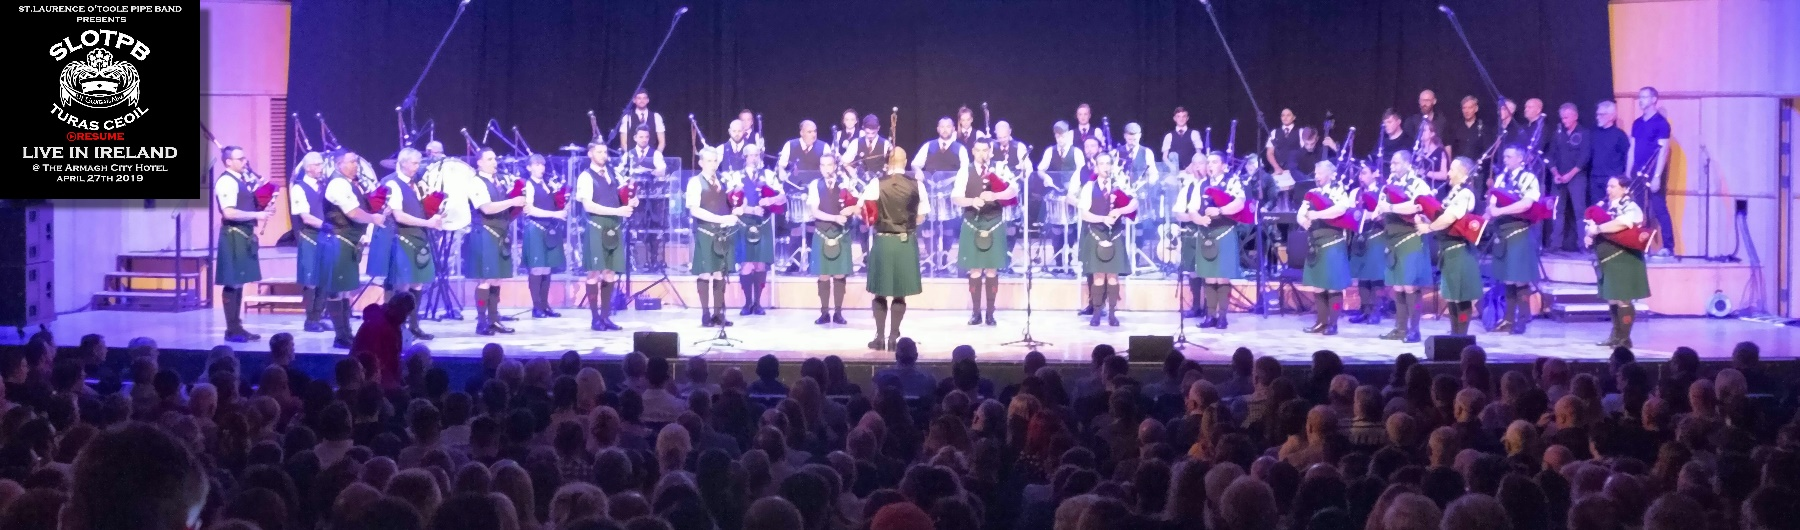 Turas Ceoil : Resume - Live in Ireland